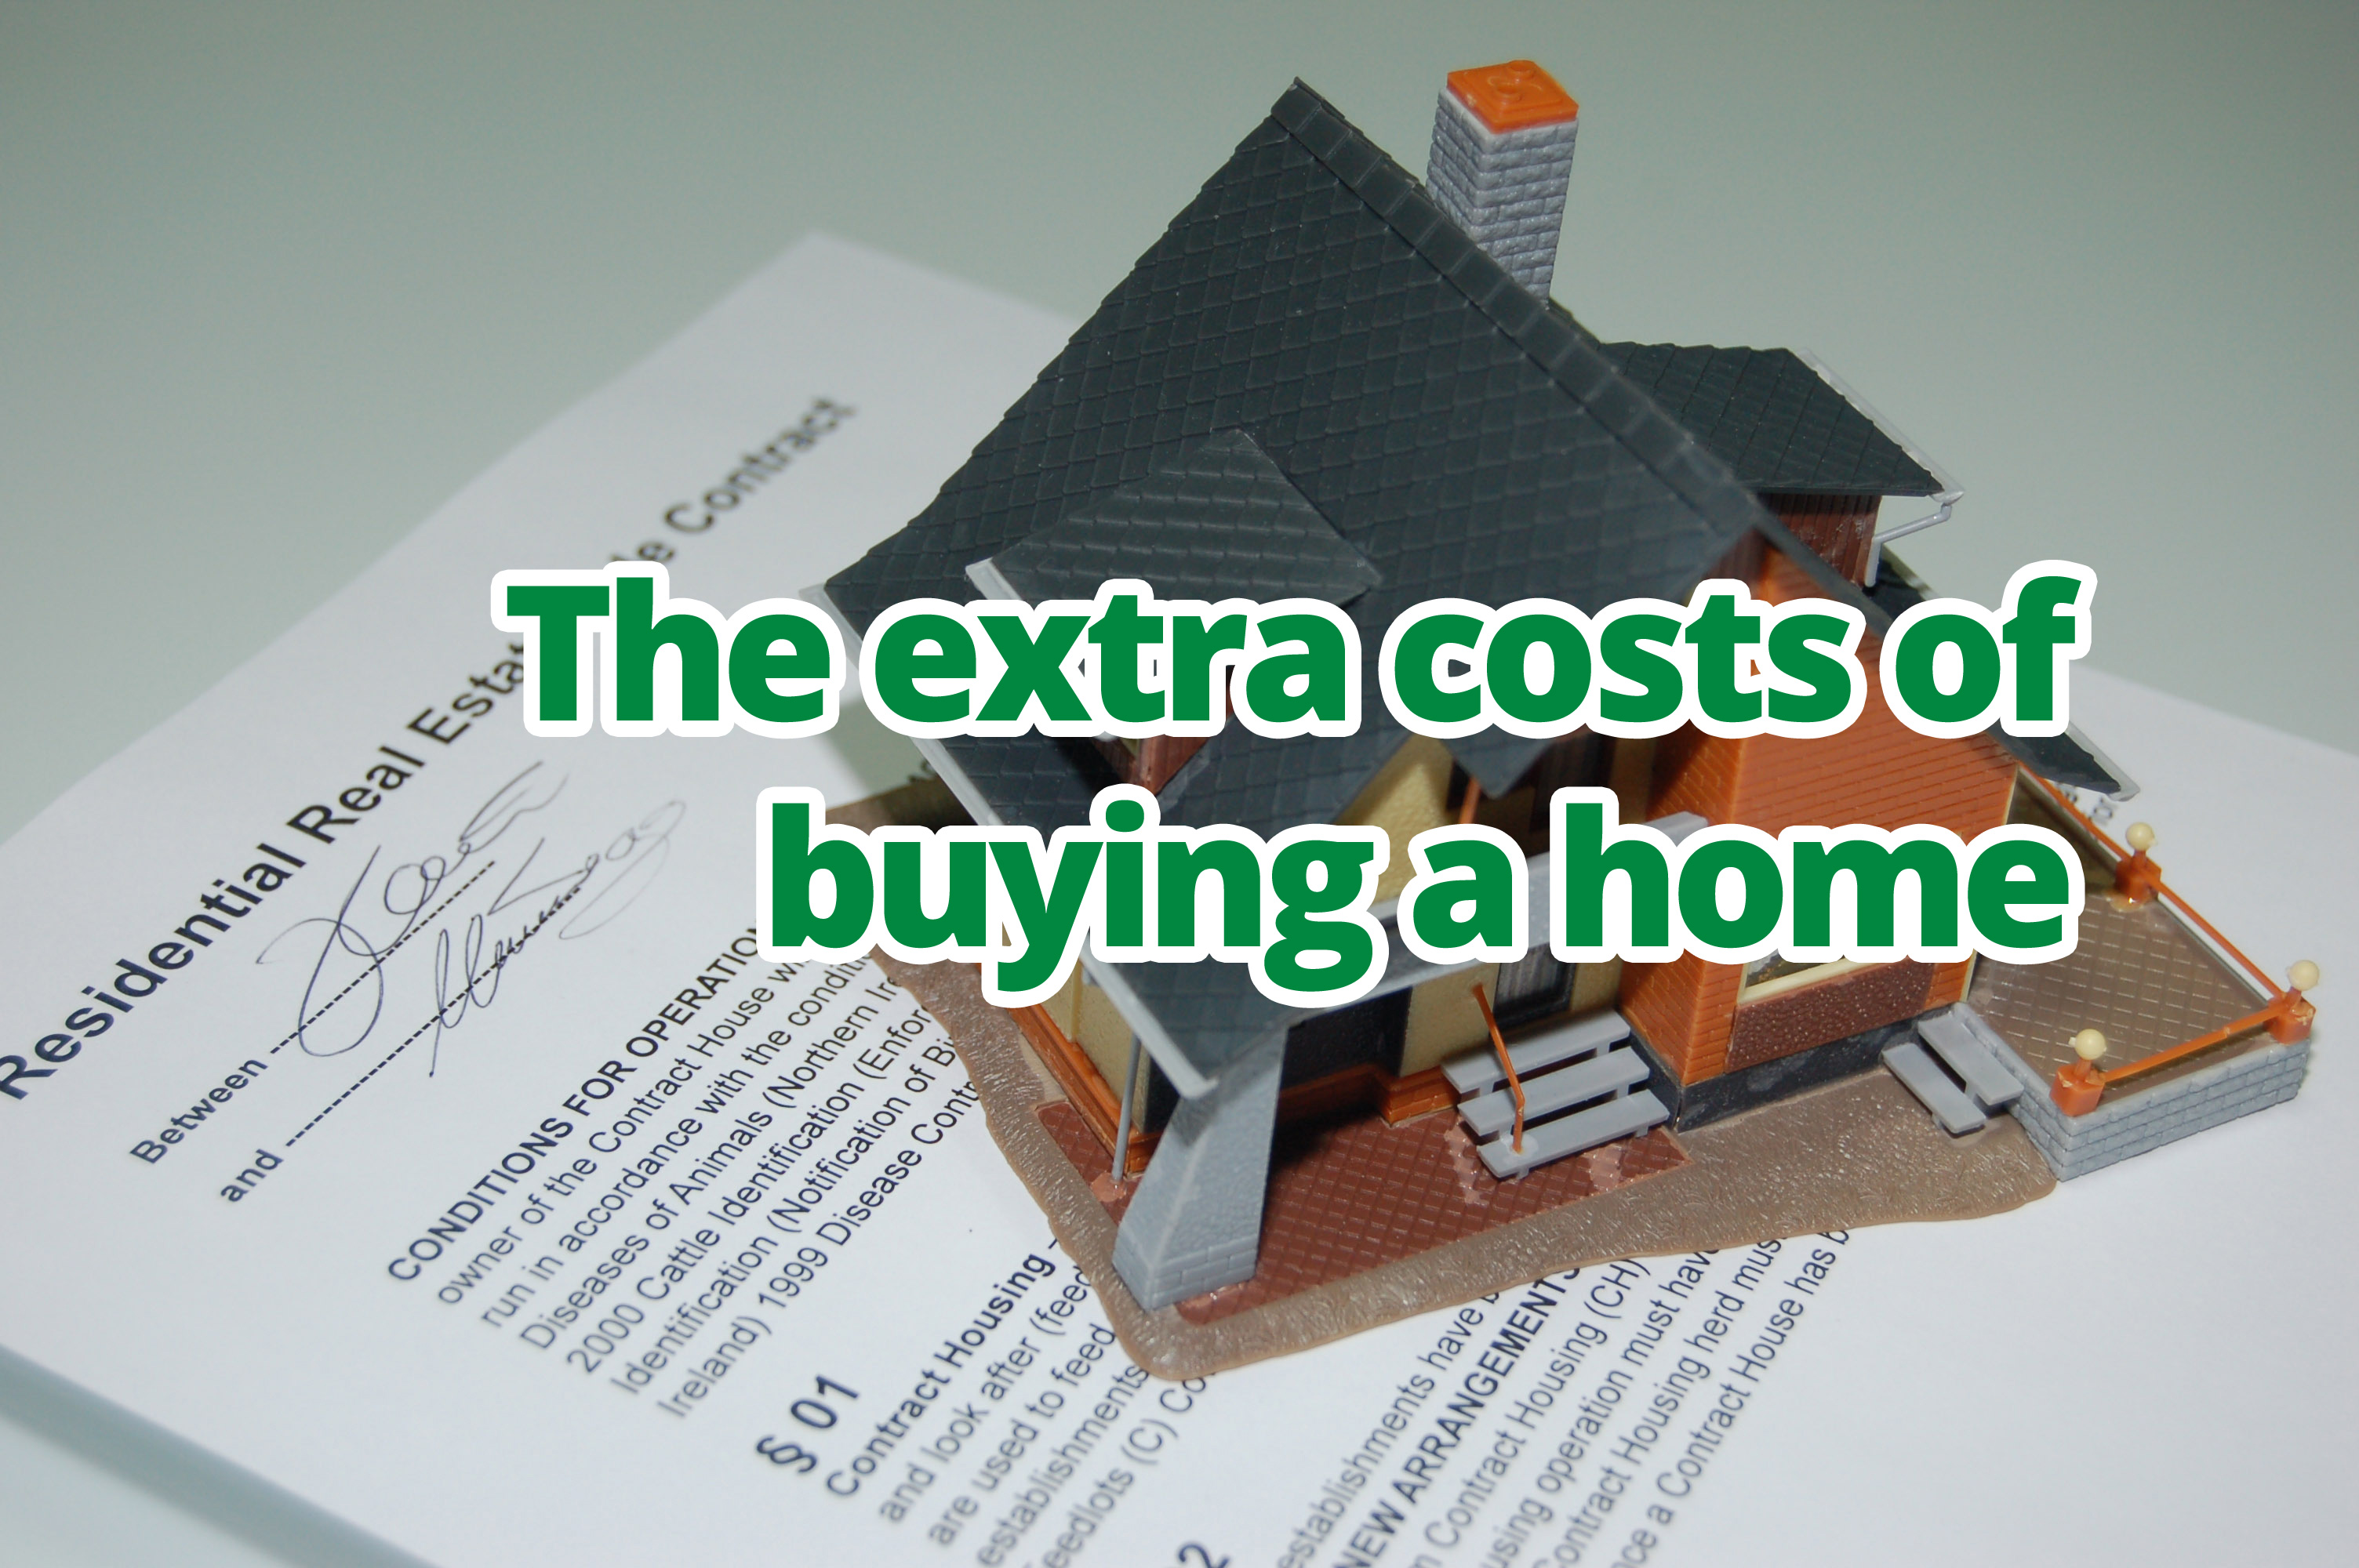 The extra costs of buying a home